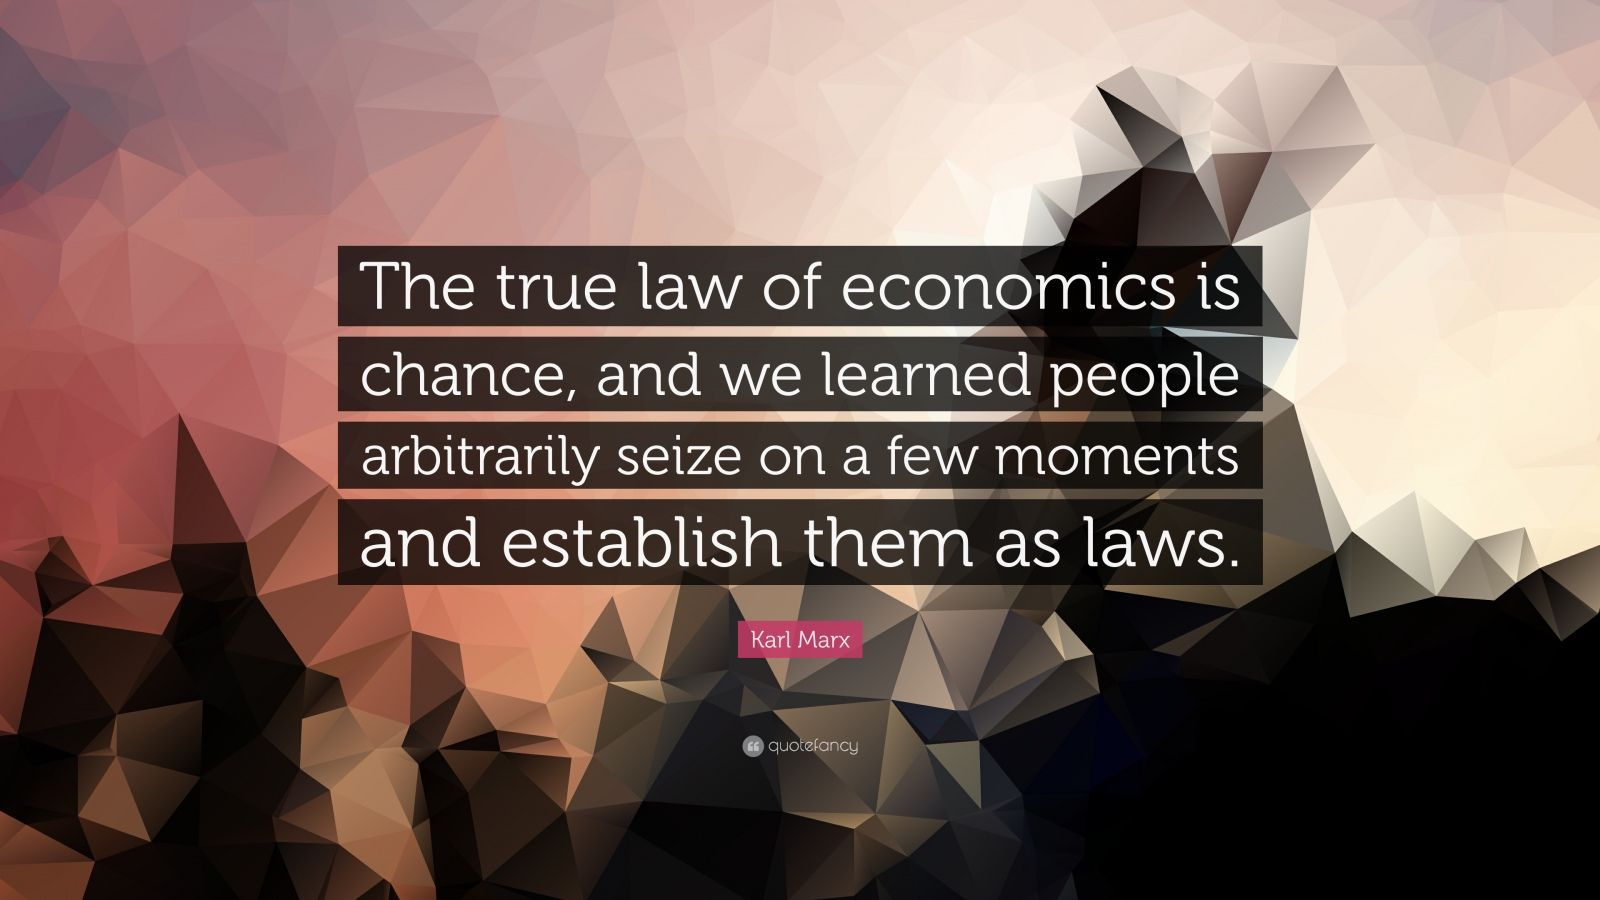 karl marx quotes quotefancy karl marx quote the true law of economics is chance and we learned